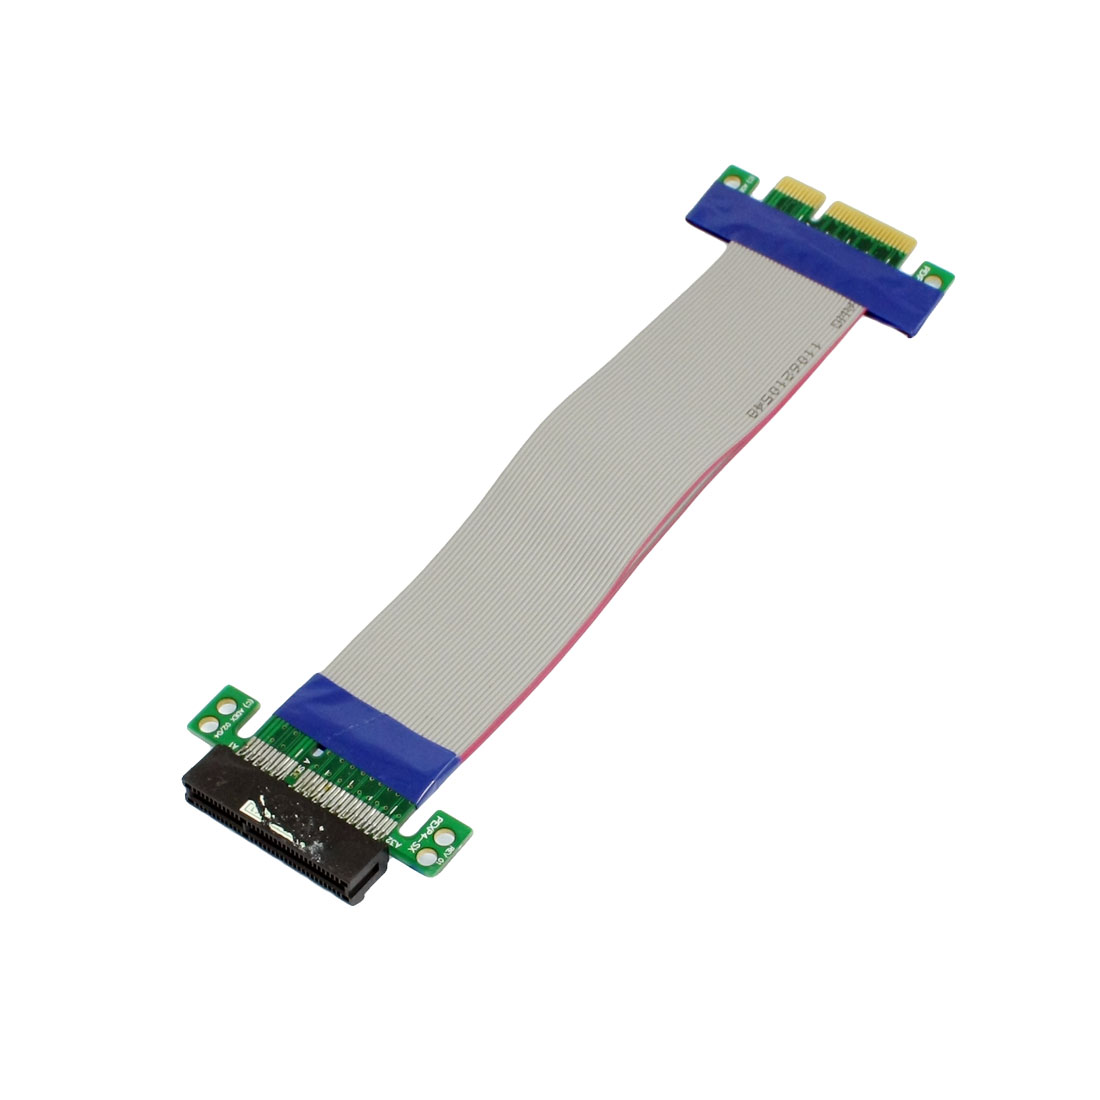 PCI-E 4X Slot Riser Card Extension Flexible Flex Relocate Cable